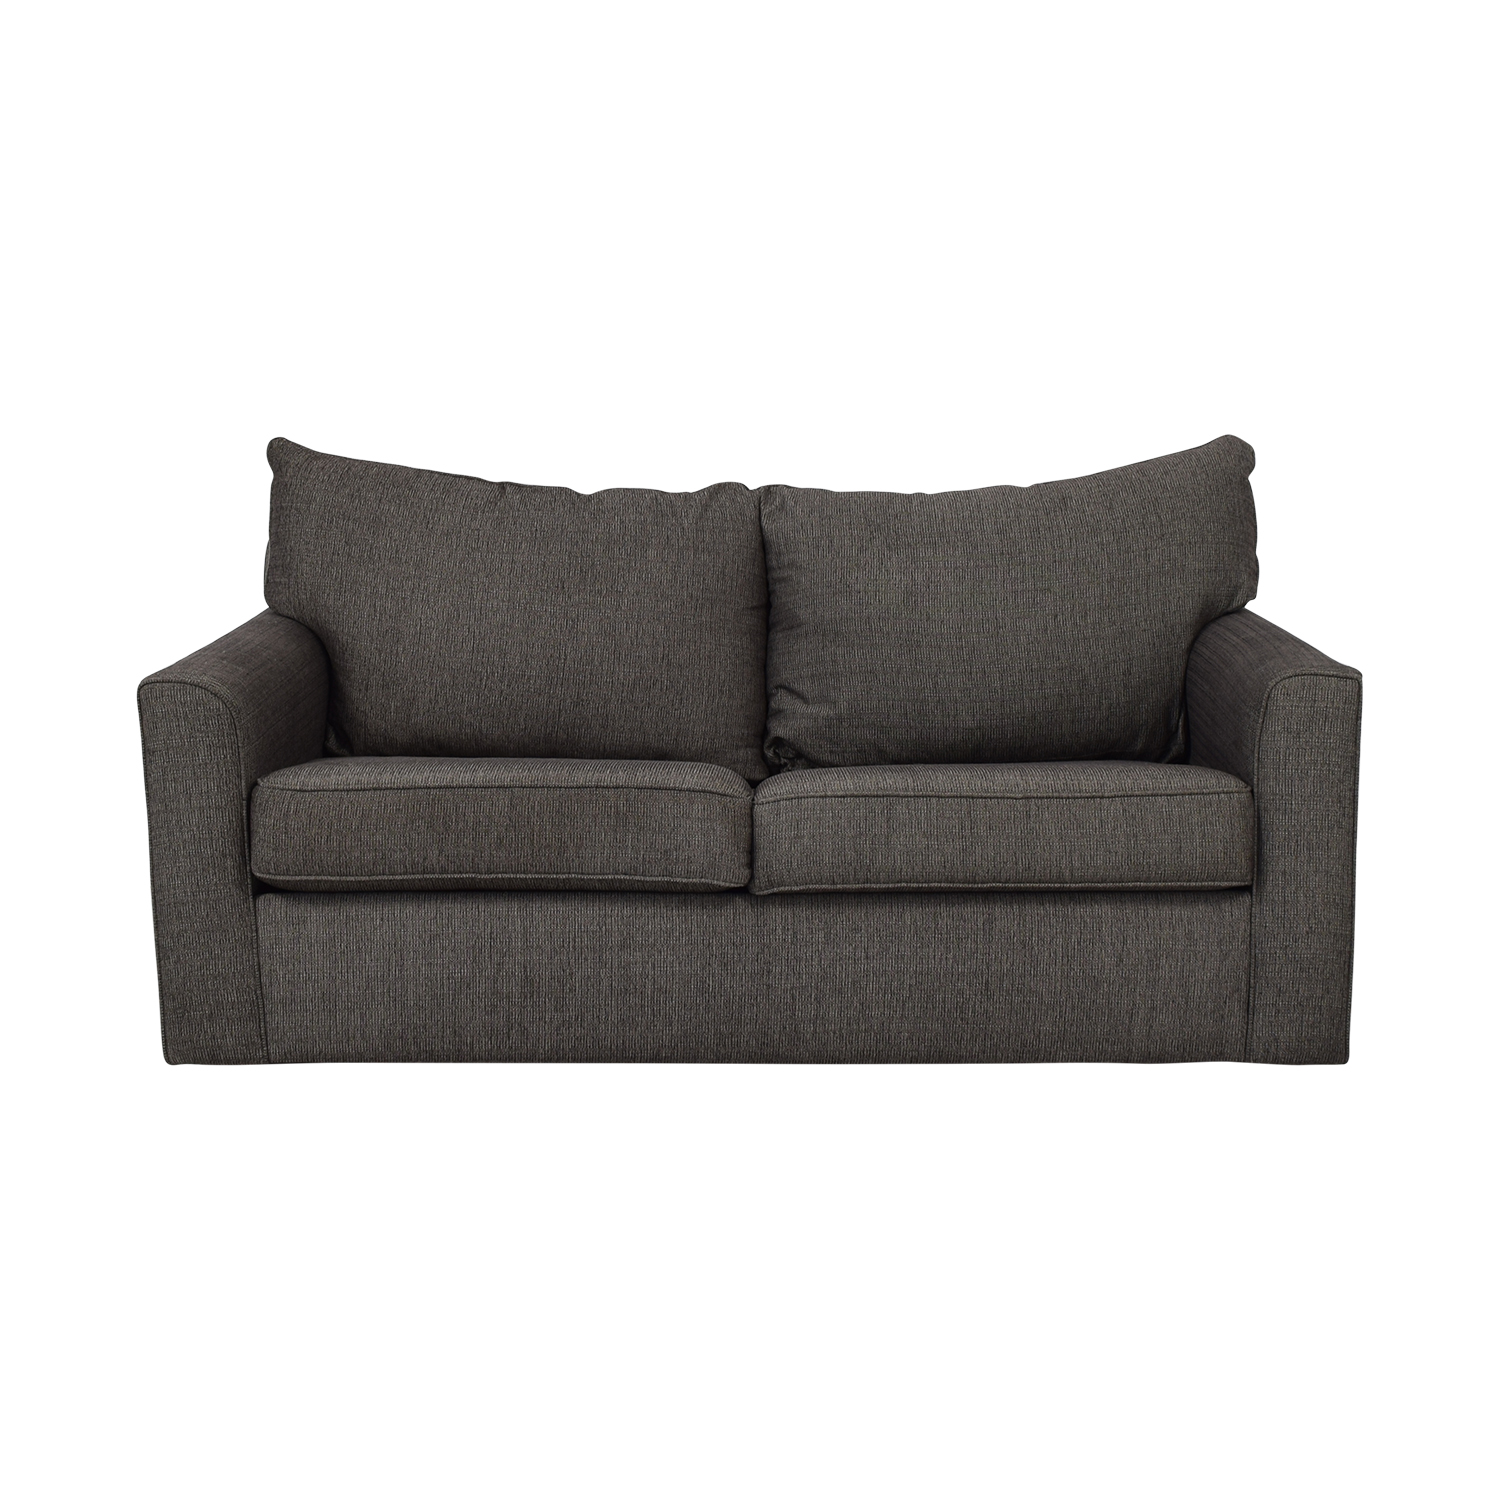 Chenille Sleeper Sofas Gus Collection 501677 Coaster